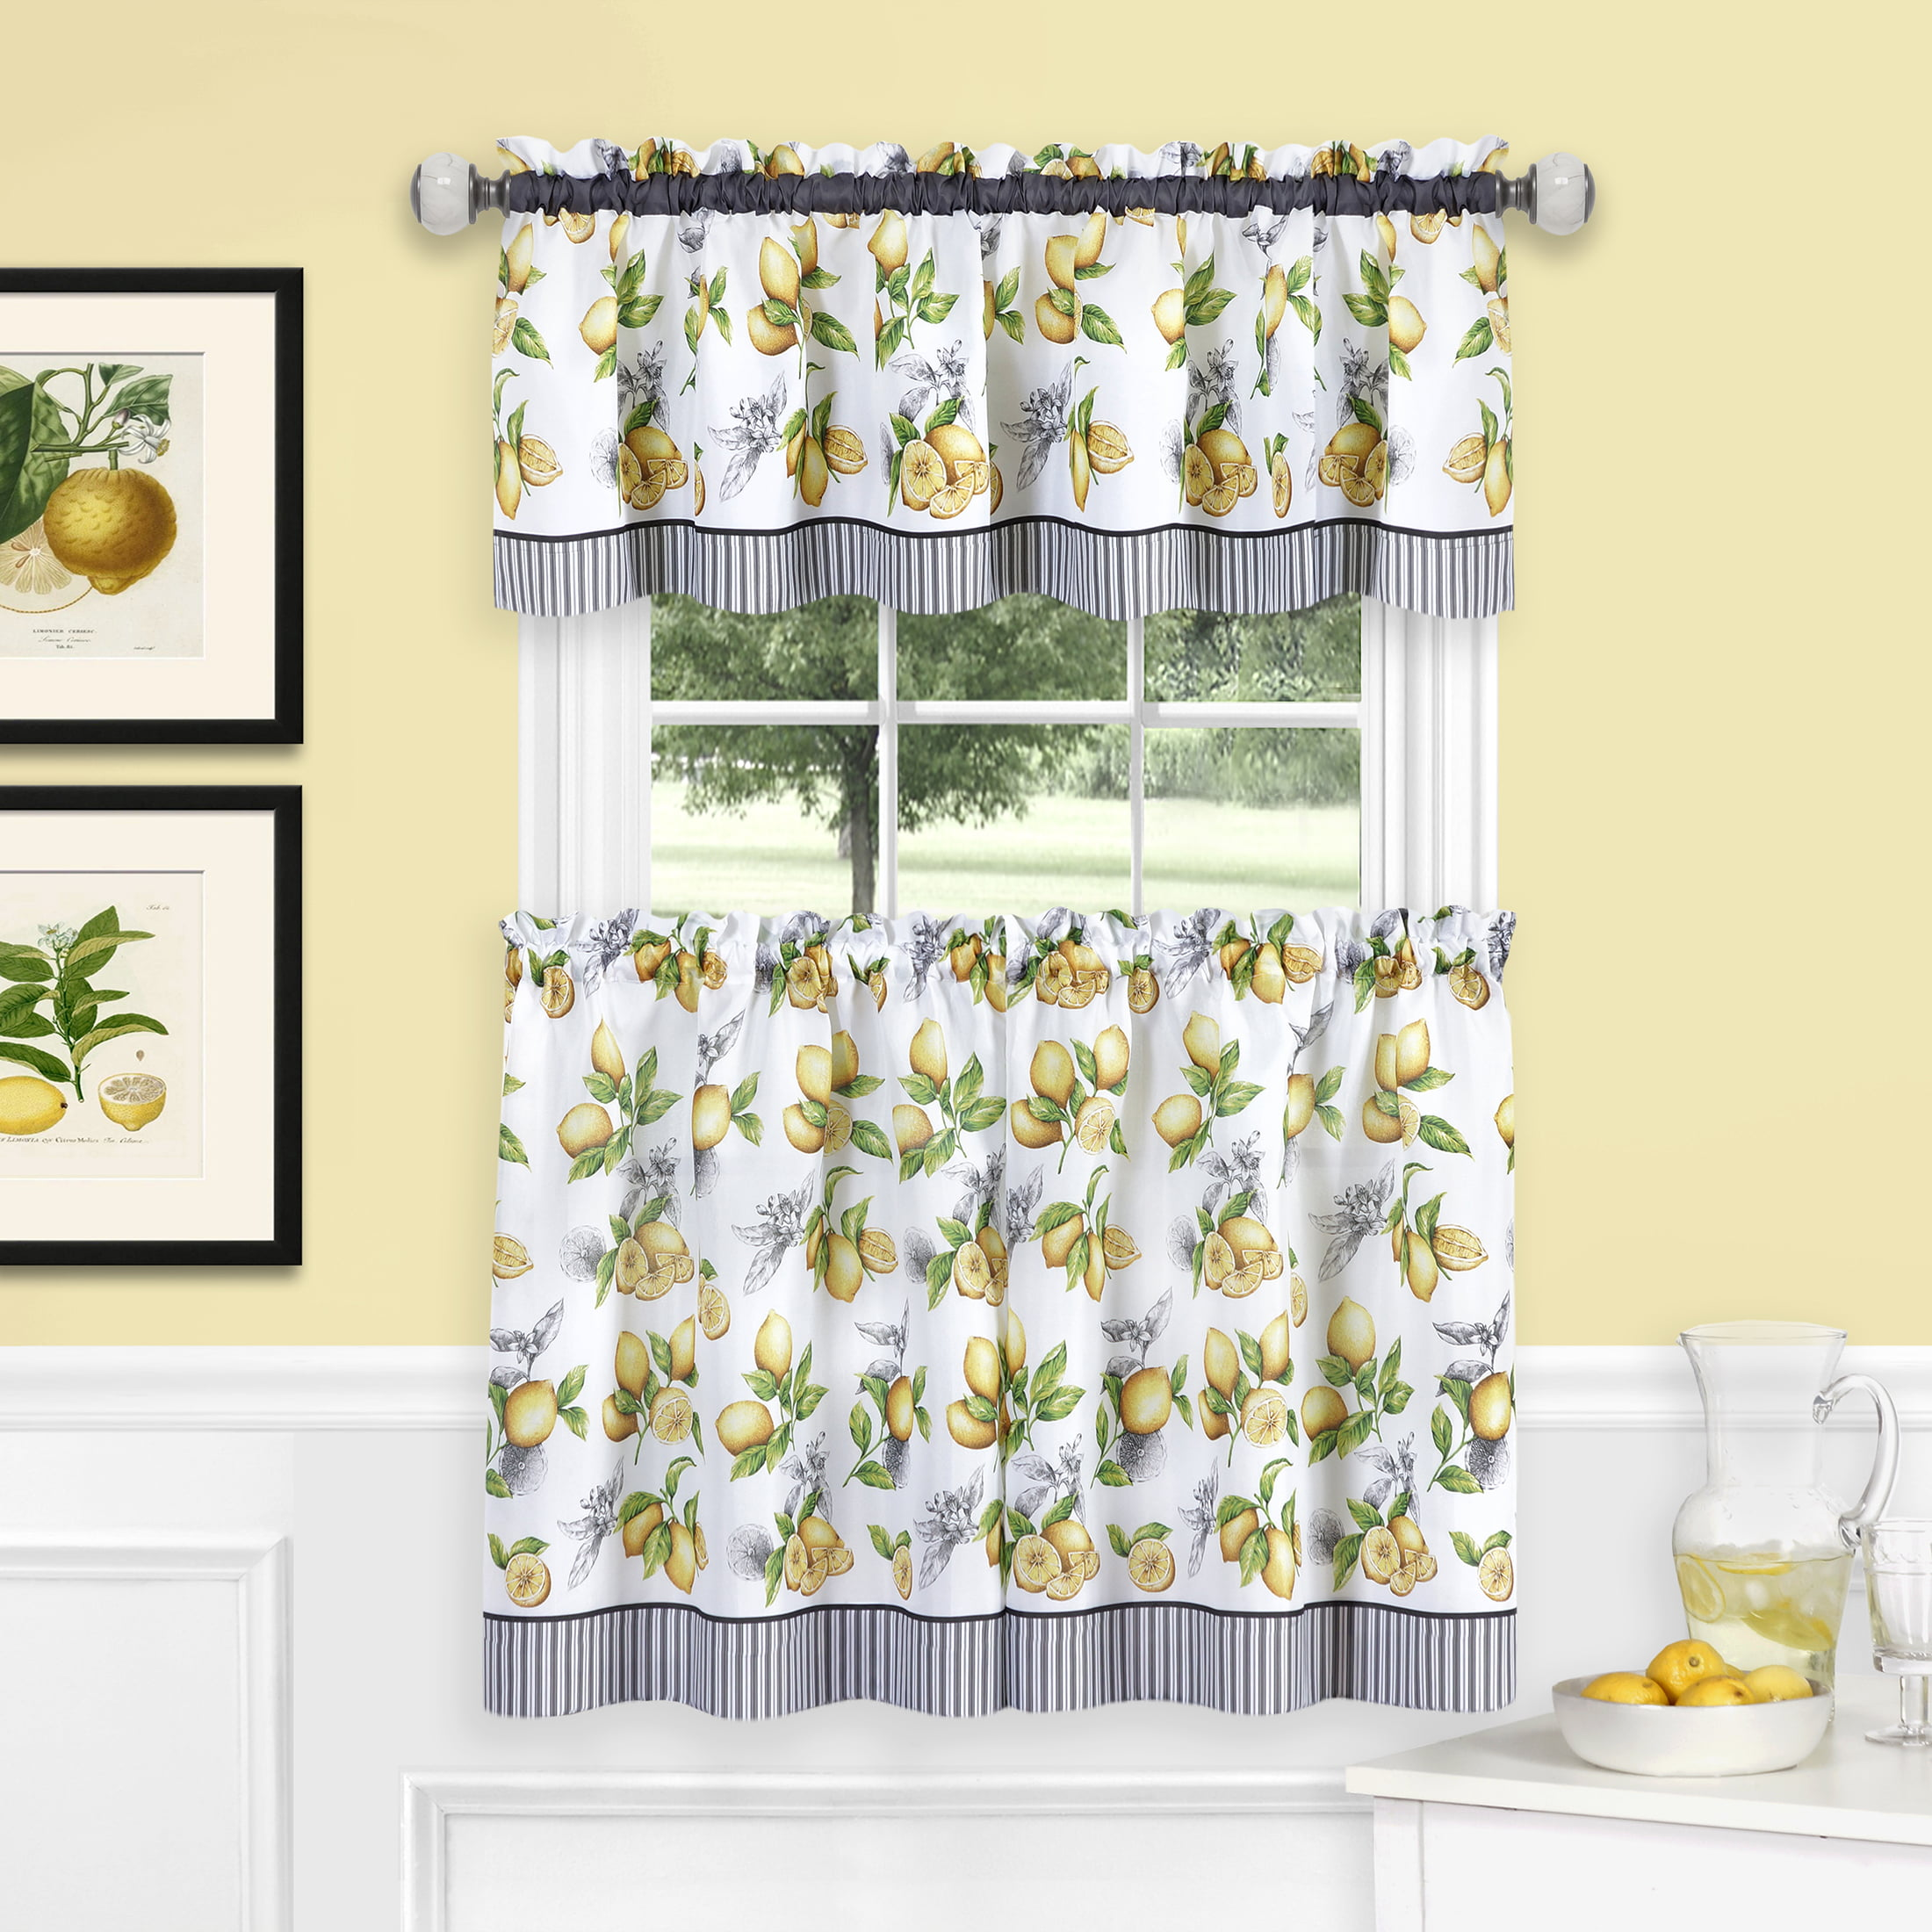 Powersellerusa 3 Piece Kitchen Curtains And Valance Set Rustic Lemon Cafe Curtains Farmhouse Kitchen Living Room And Bedroom Decor Lemon Print Walmart Com Walmart Com